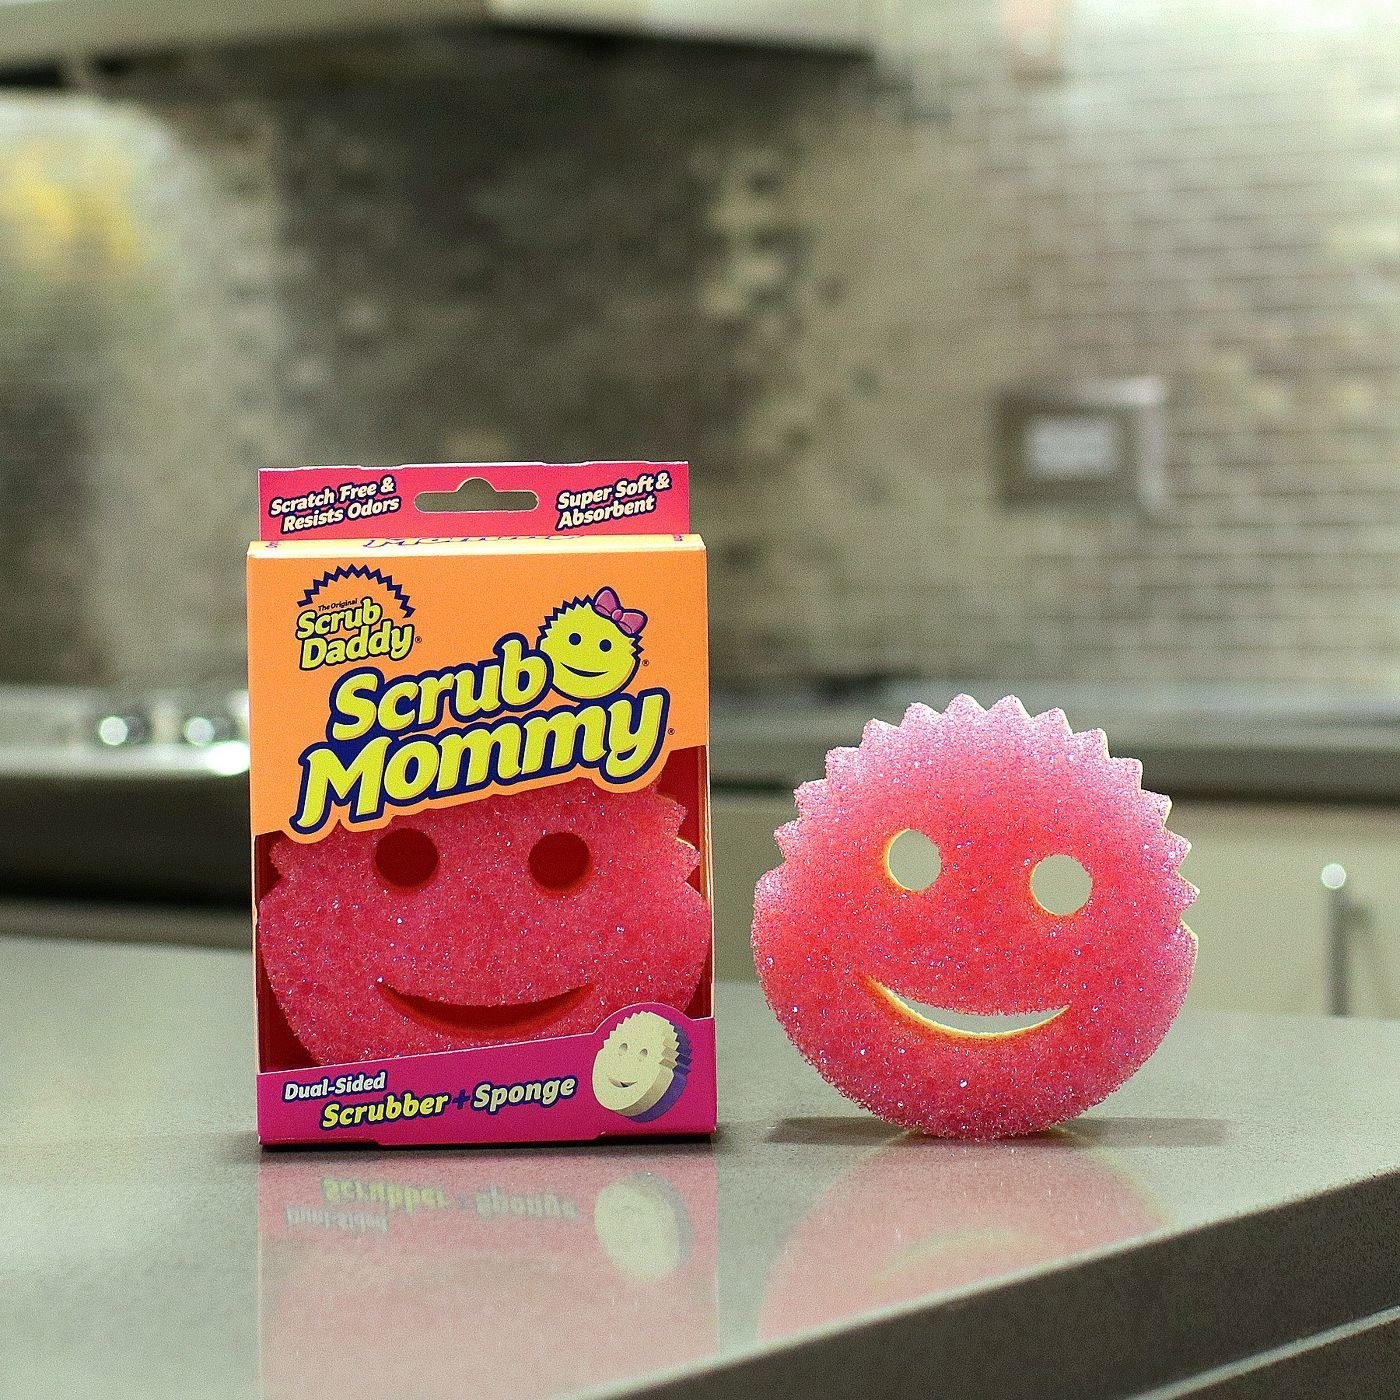 The Scrub Mommy in its package, and another one out of the package, on a kitchen island countertop